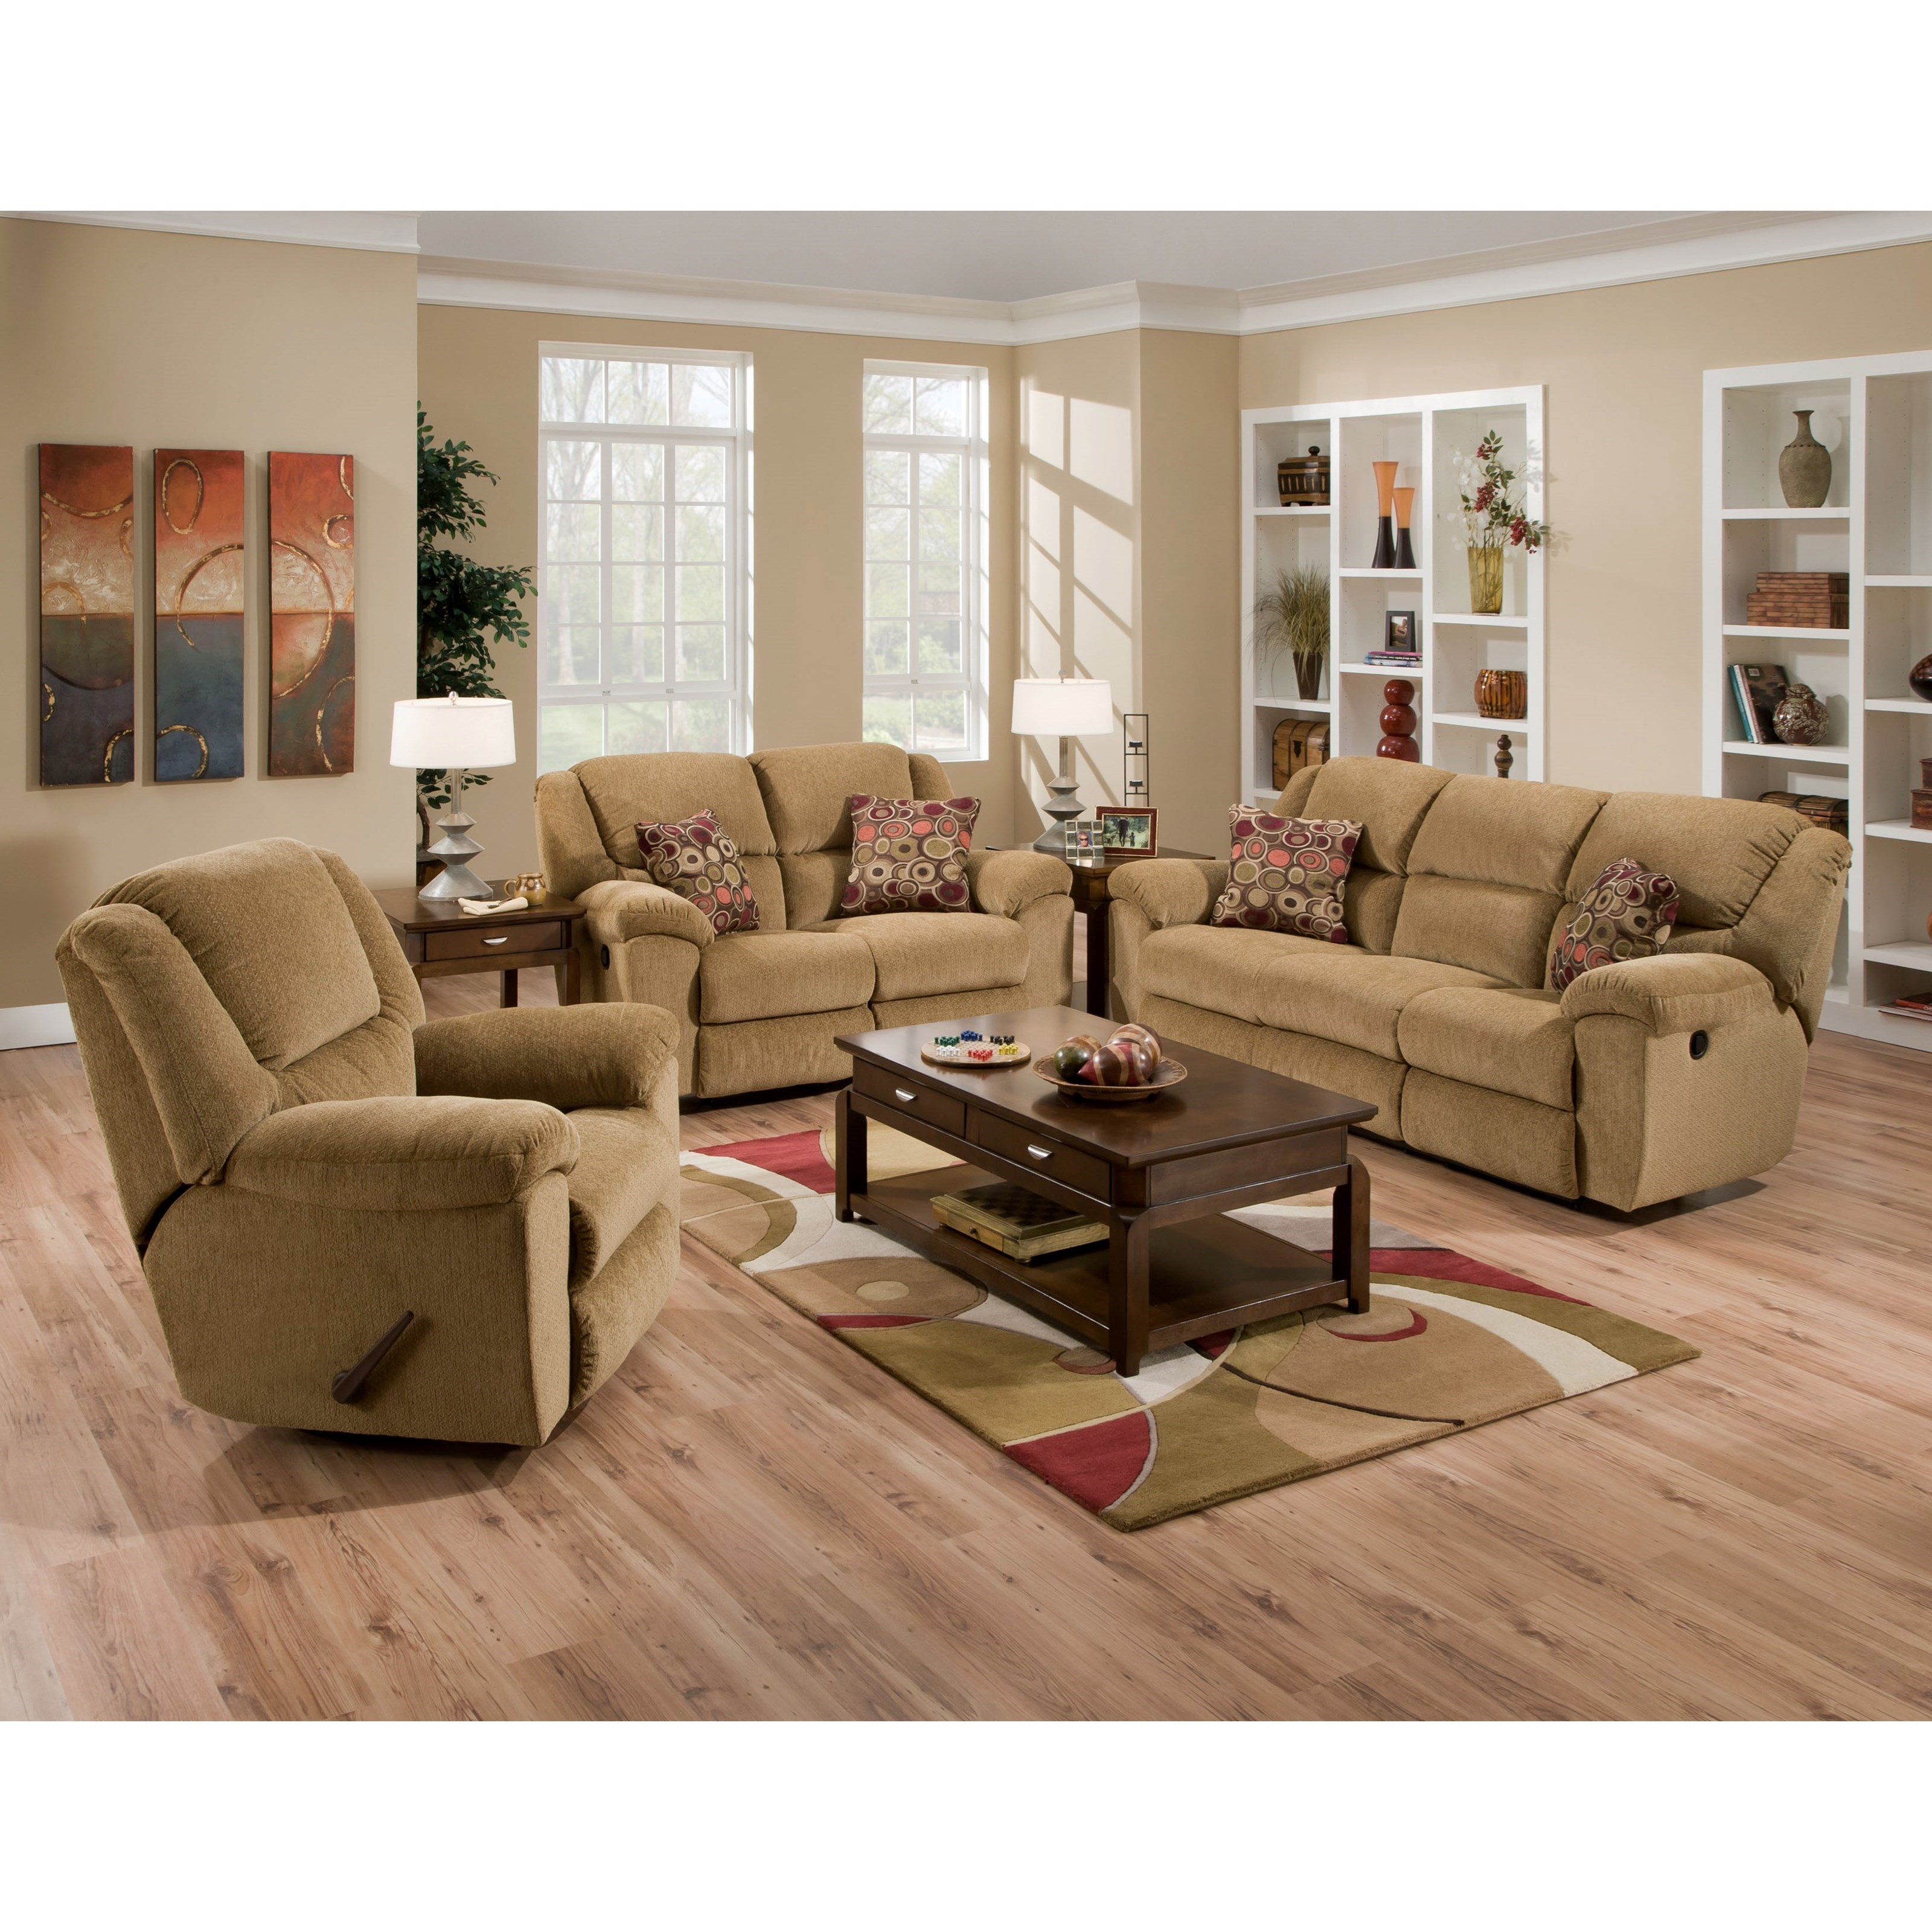 Catnapper Transformer Ultimate Sofa With 3 Recliners And